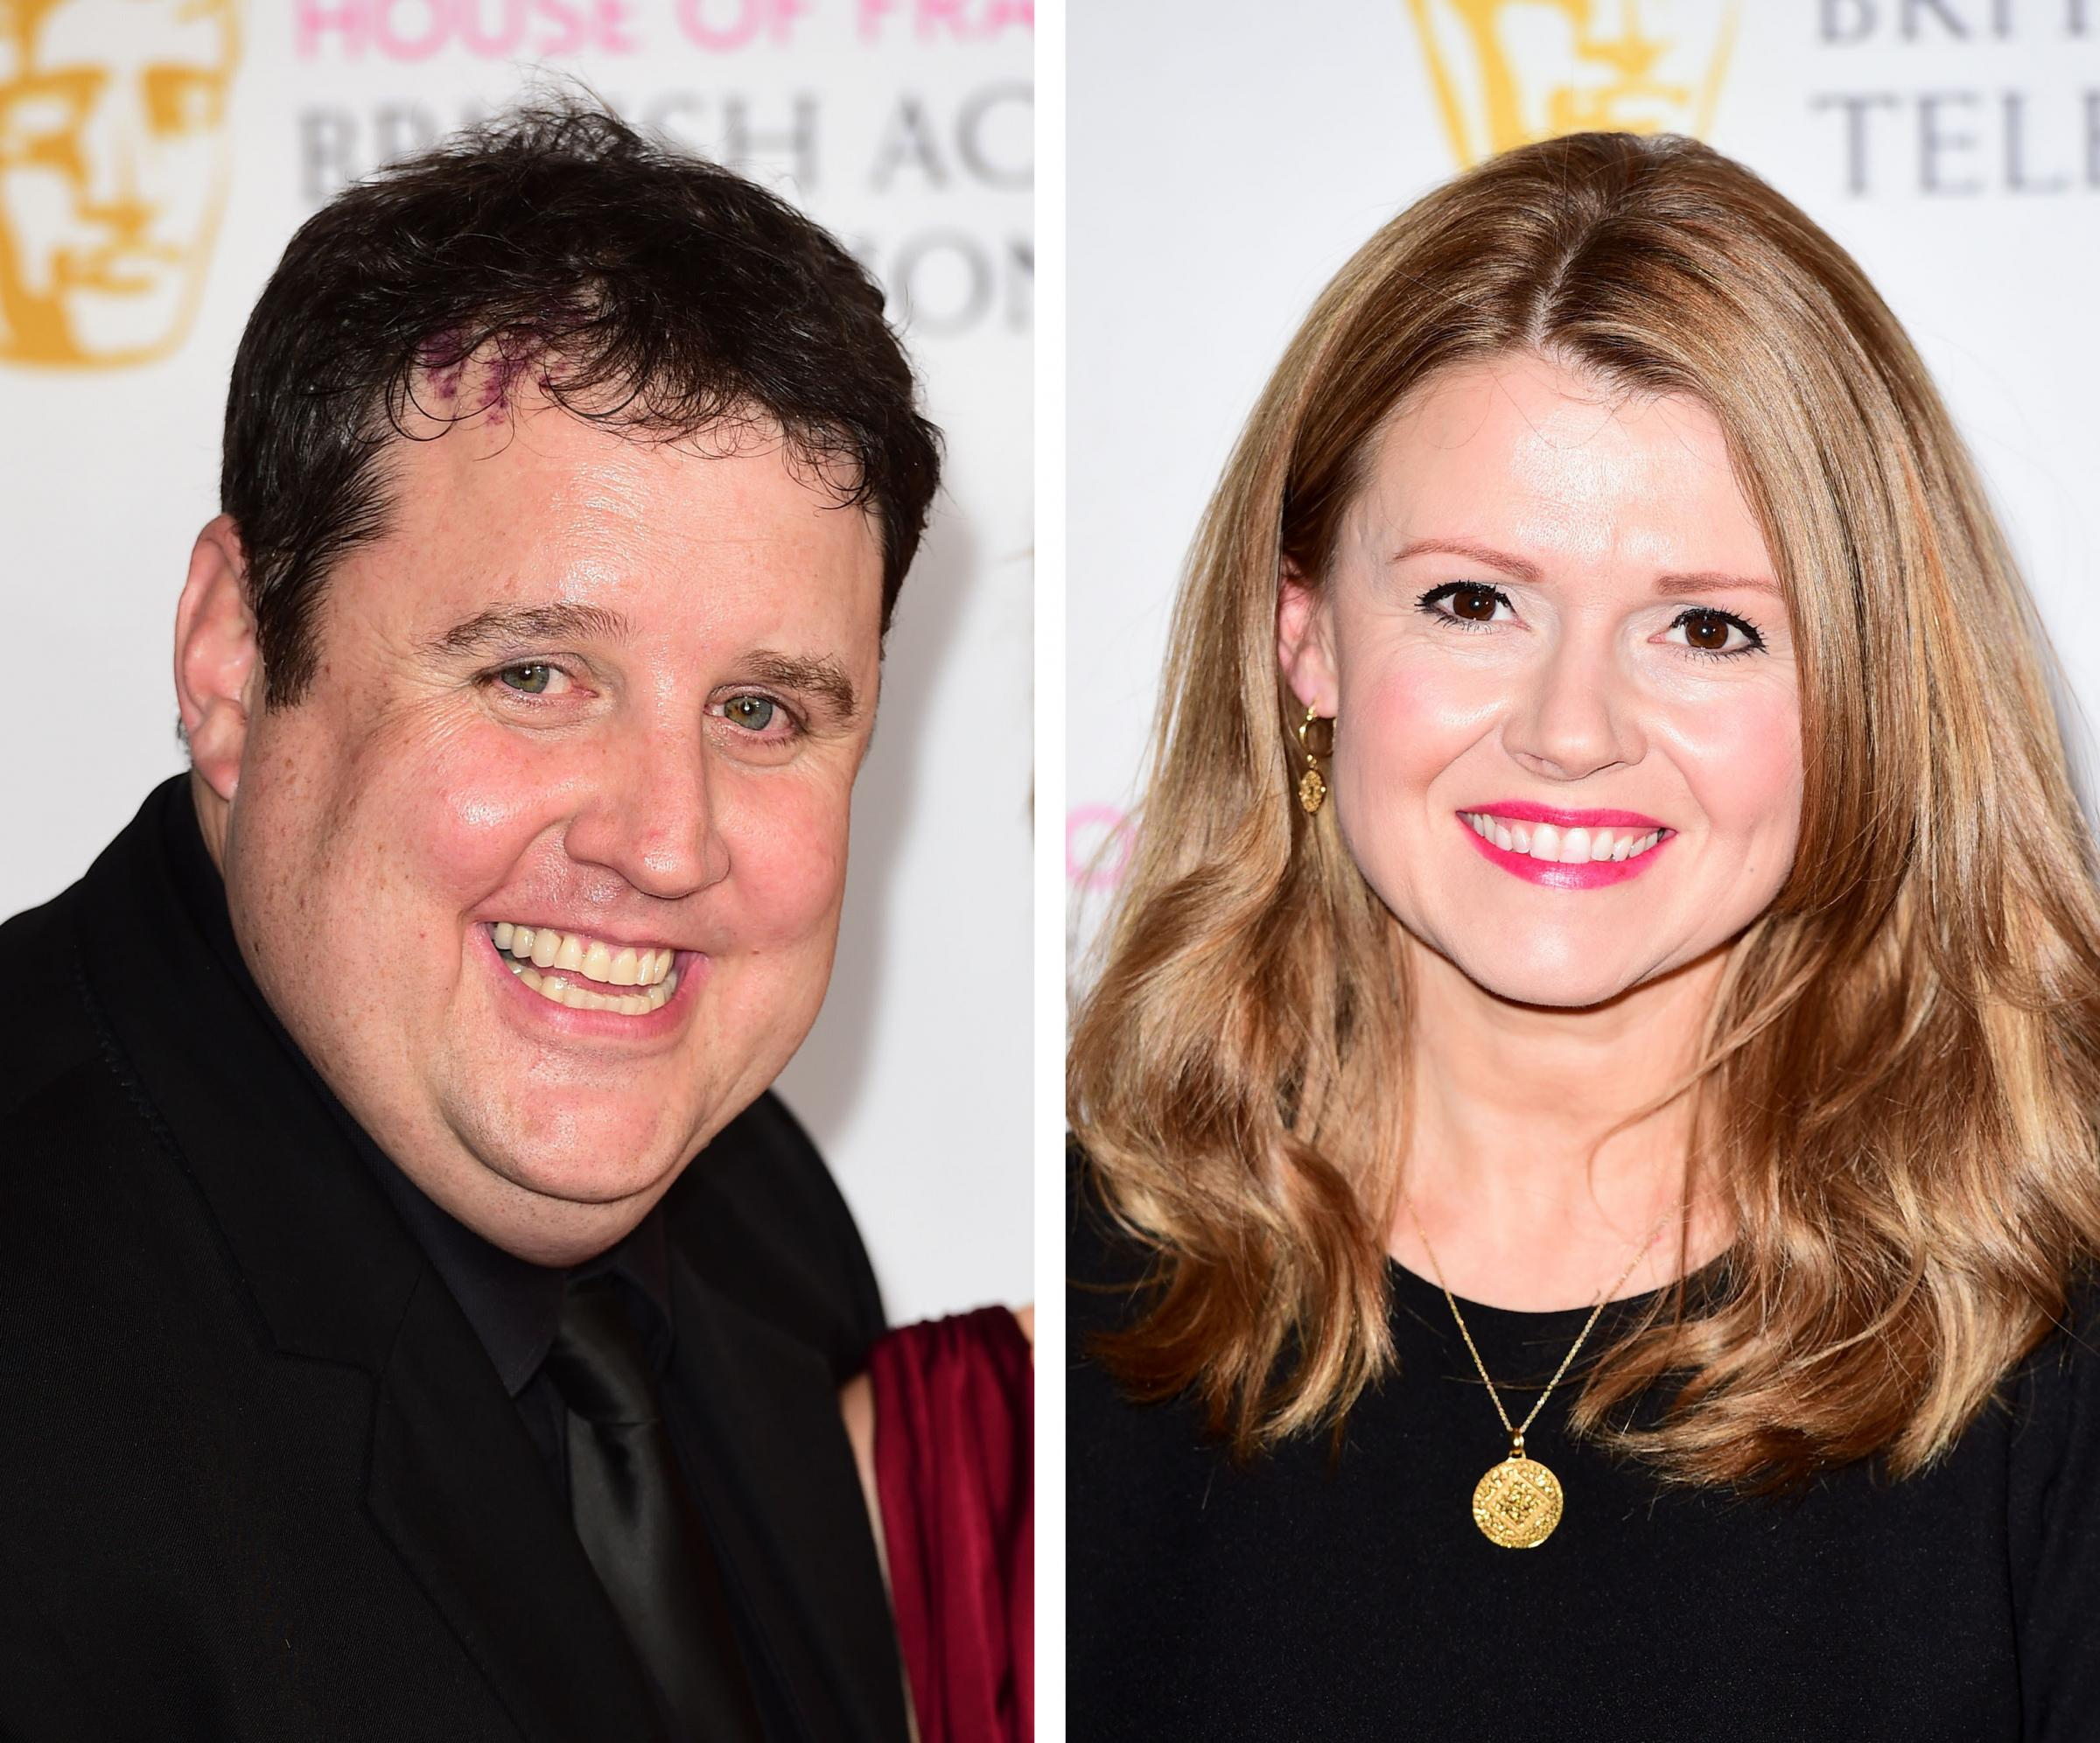 Peter Kay and Sian Gibson.